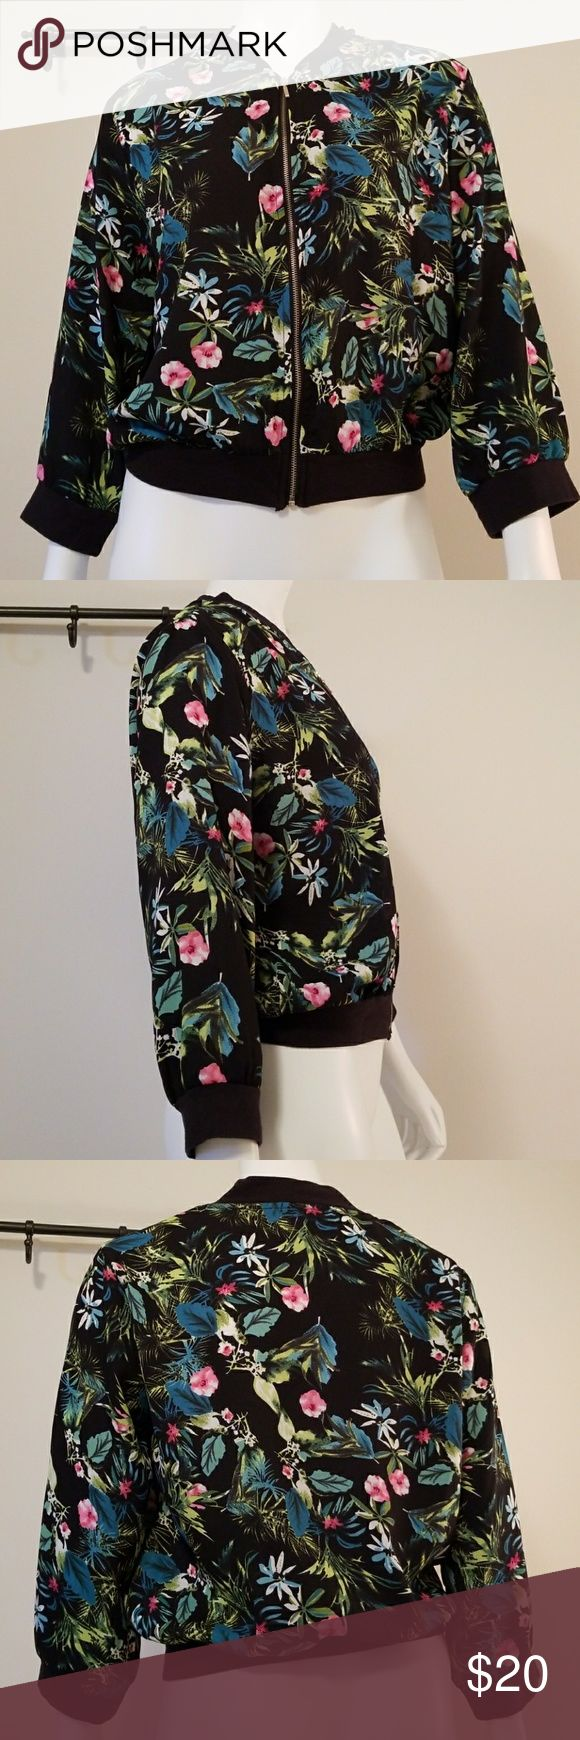 "Style House Sheer Floral Zip Up In excellent condition. Beautiful floral print. Black sweatshirt material (cotton) on collar, cuffs, and bottom hem. Long sleeve zip up.   Approximate measurements:  Length - 19""  Size S Style House Tops Tees - Long Sleeve"